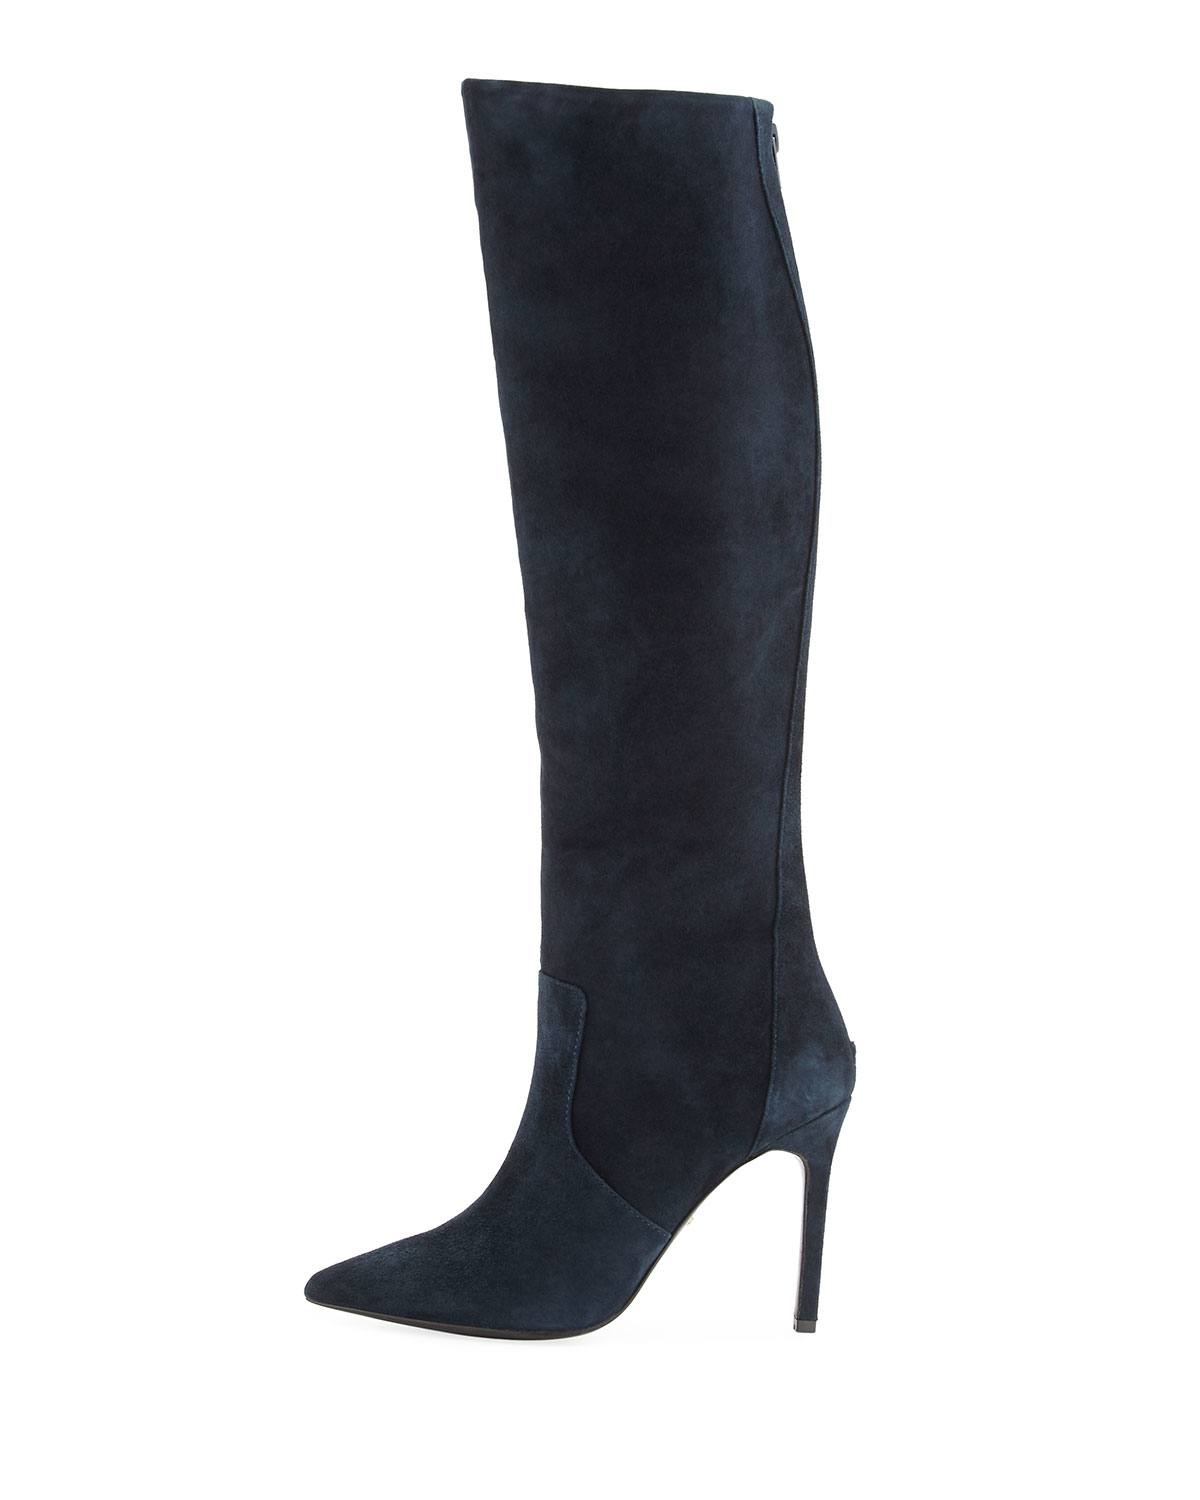 Access to a stylish selection of Women's heels, shoes, sandals and boots.